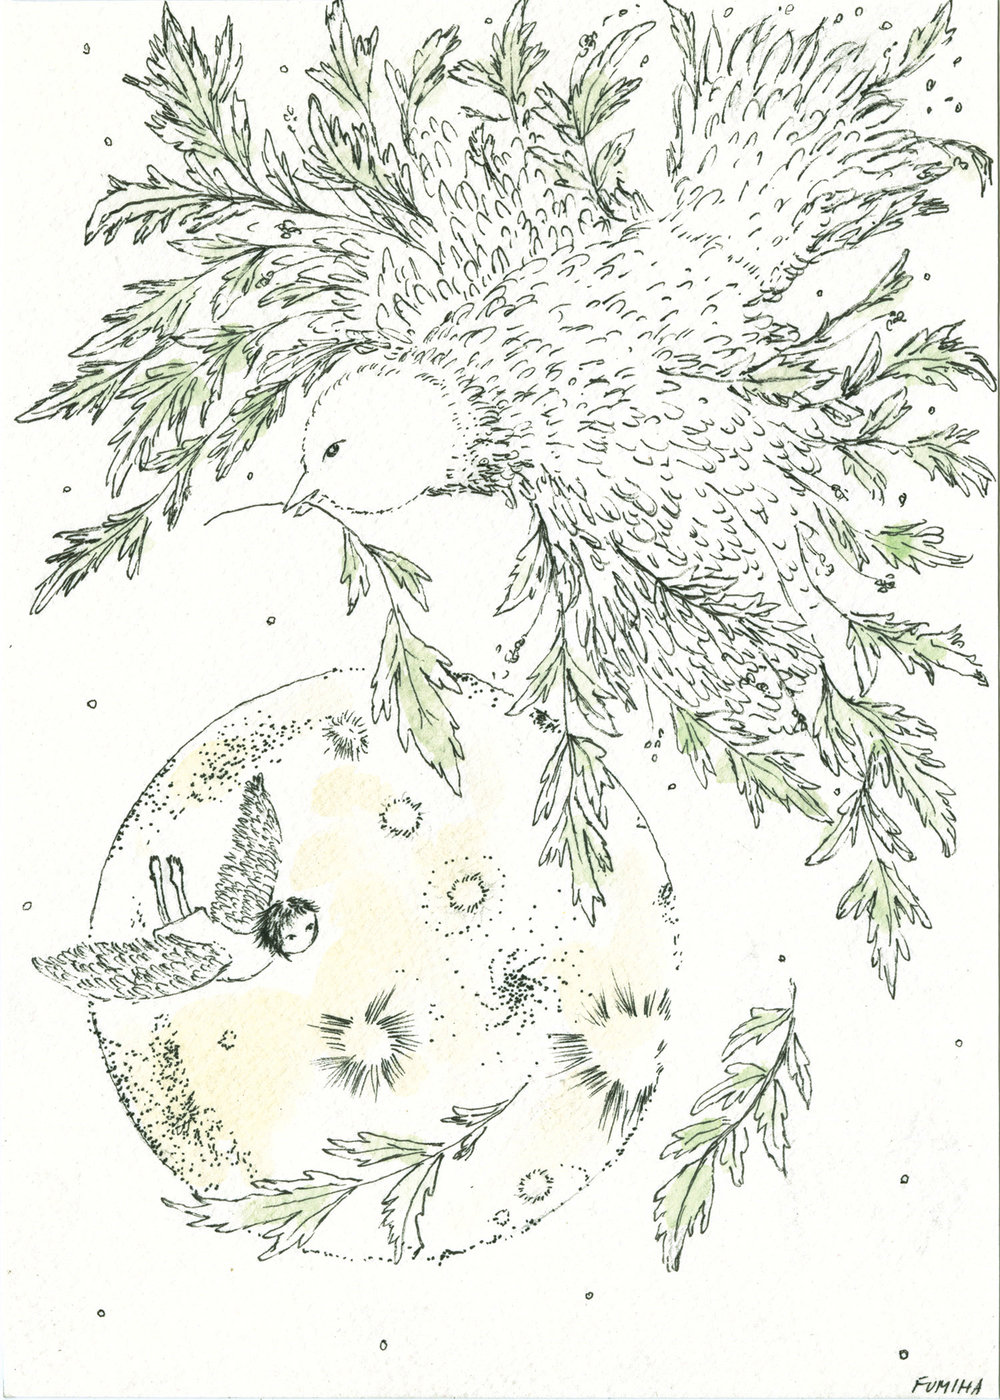 …What mugwort say...   Fly low and high  deep and wide  big and away.  Fly with no fear.  Trust every single feathers you own.  If you fall,  know that that's where you must explore.  Collect more feathers and fly again.  Fly Free to the unknown.